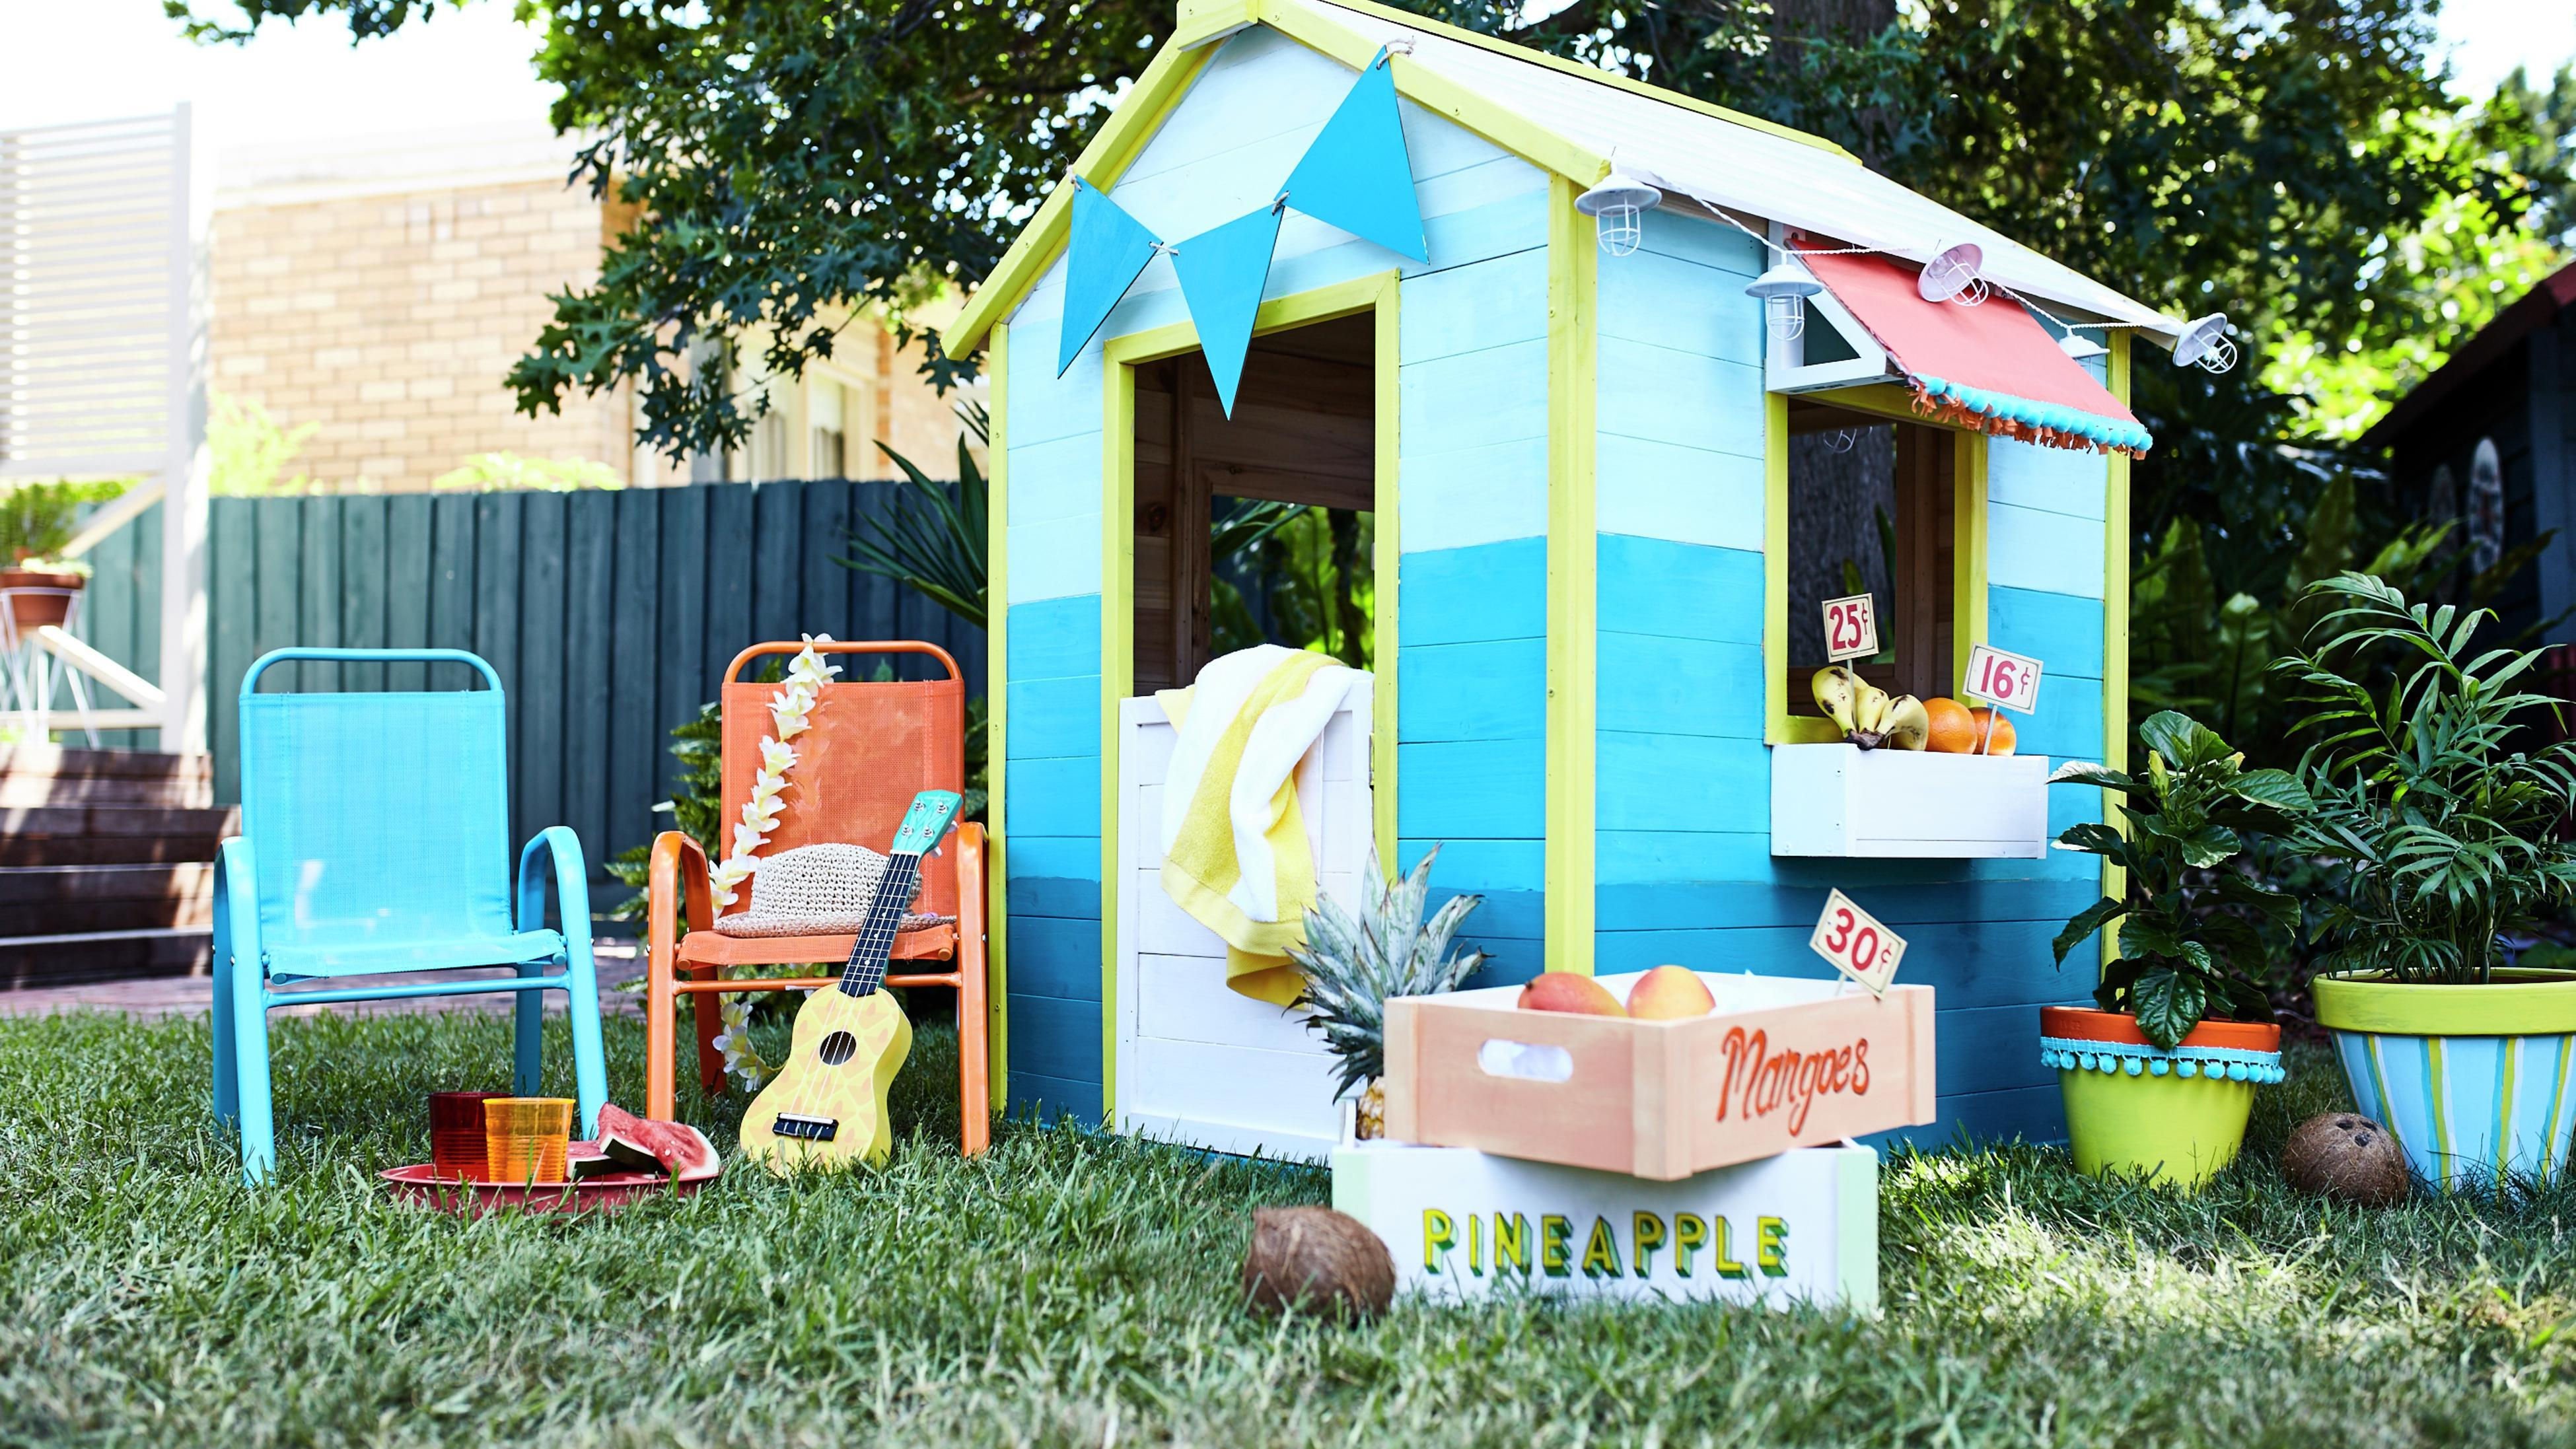 Kids cubby house with small recliner chairs, and decorative items out front.